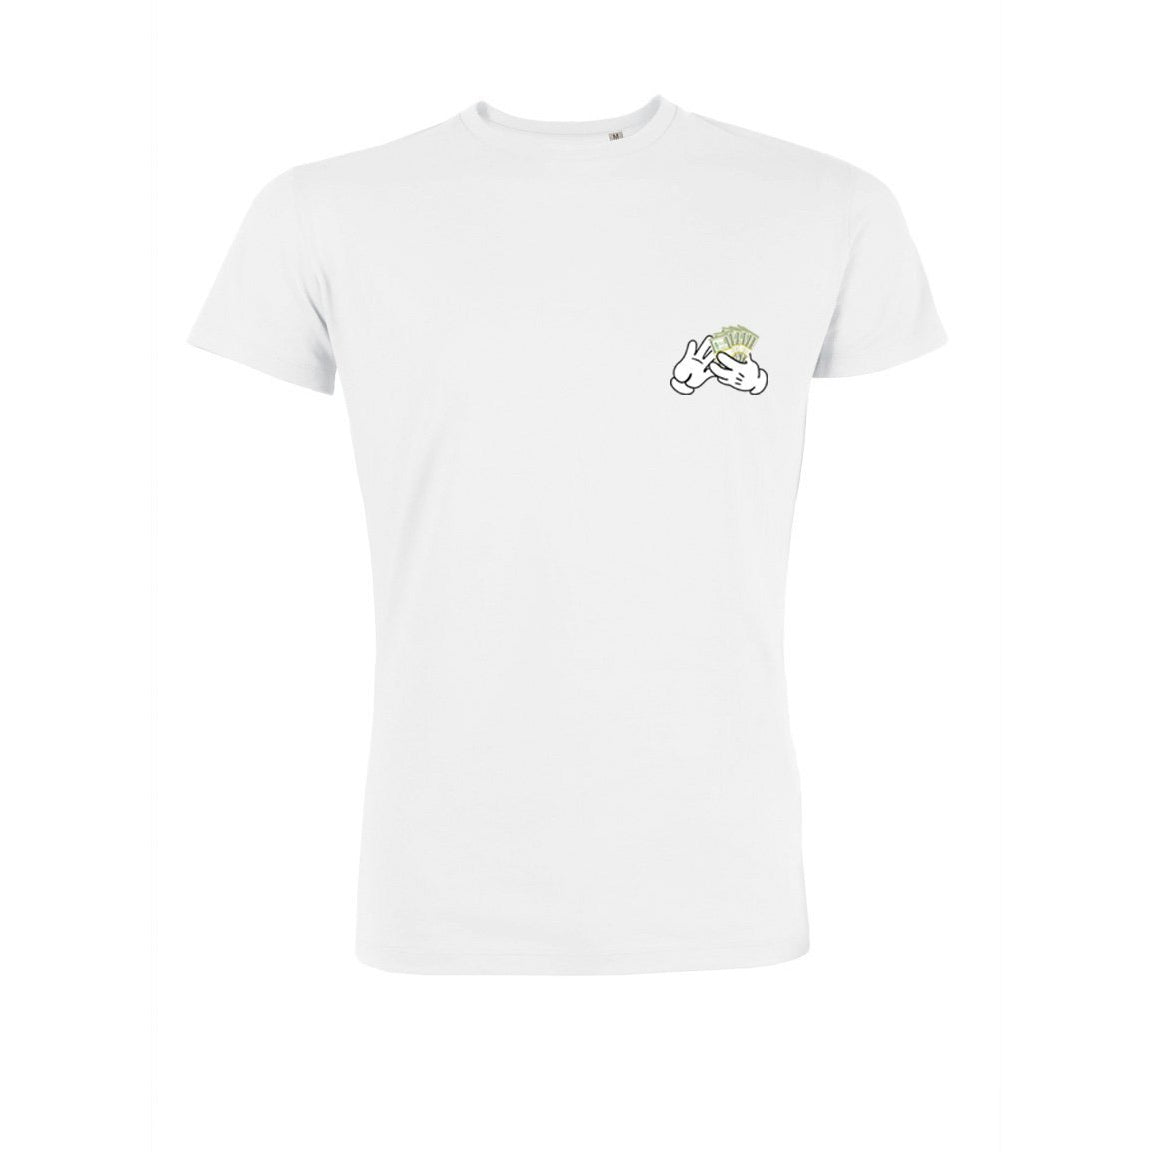 POCKET CASH T-SHIRT - WHITE